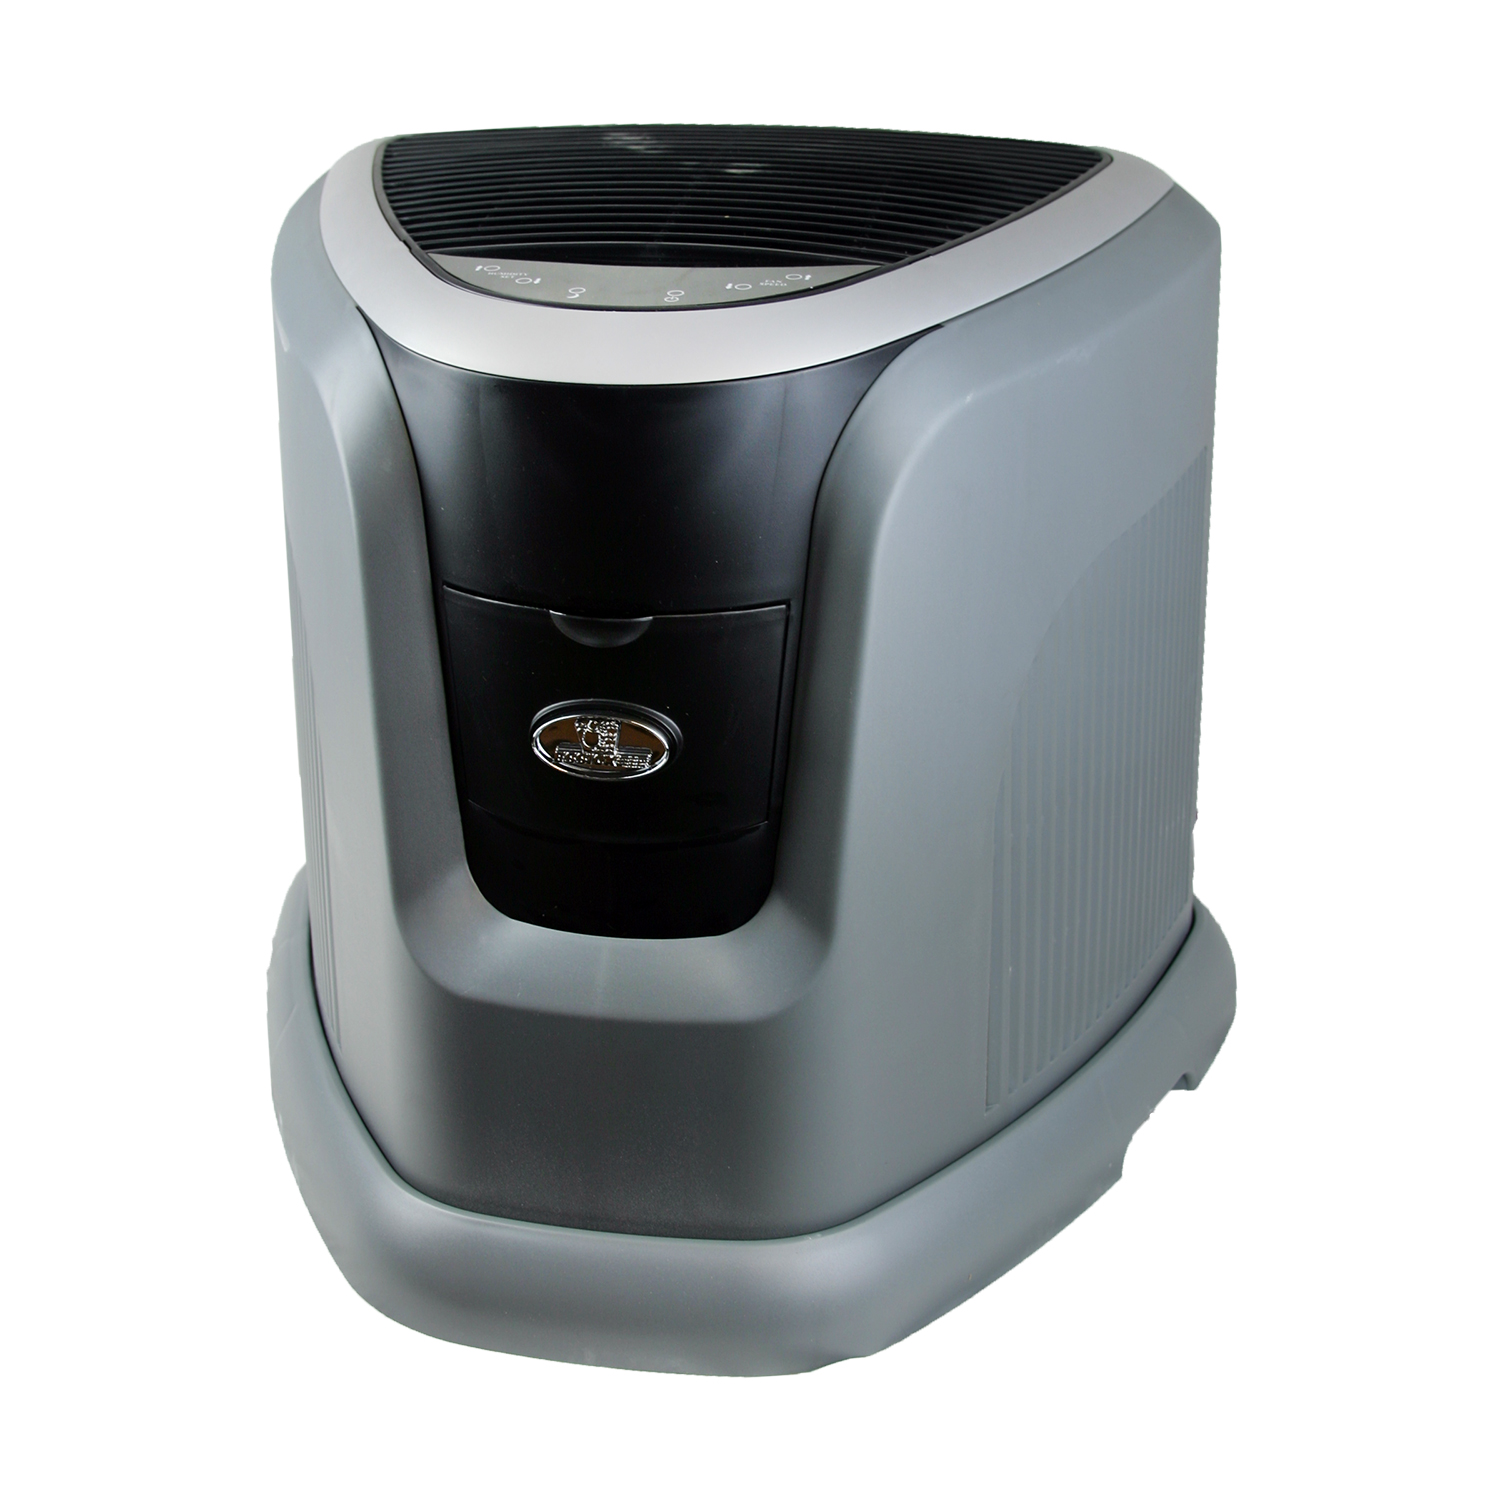 Ultrasonic Humidifiers VS Evaporative Humidifiers, Which